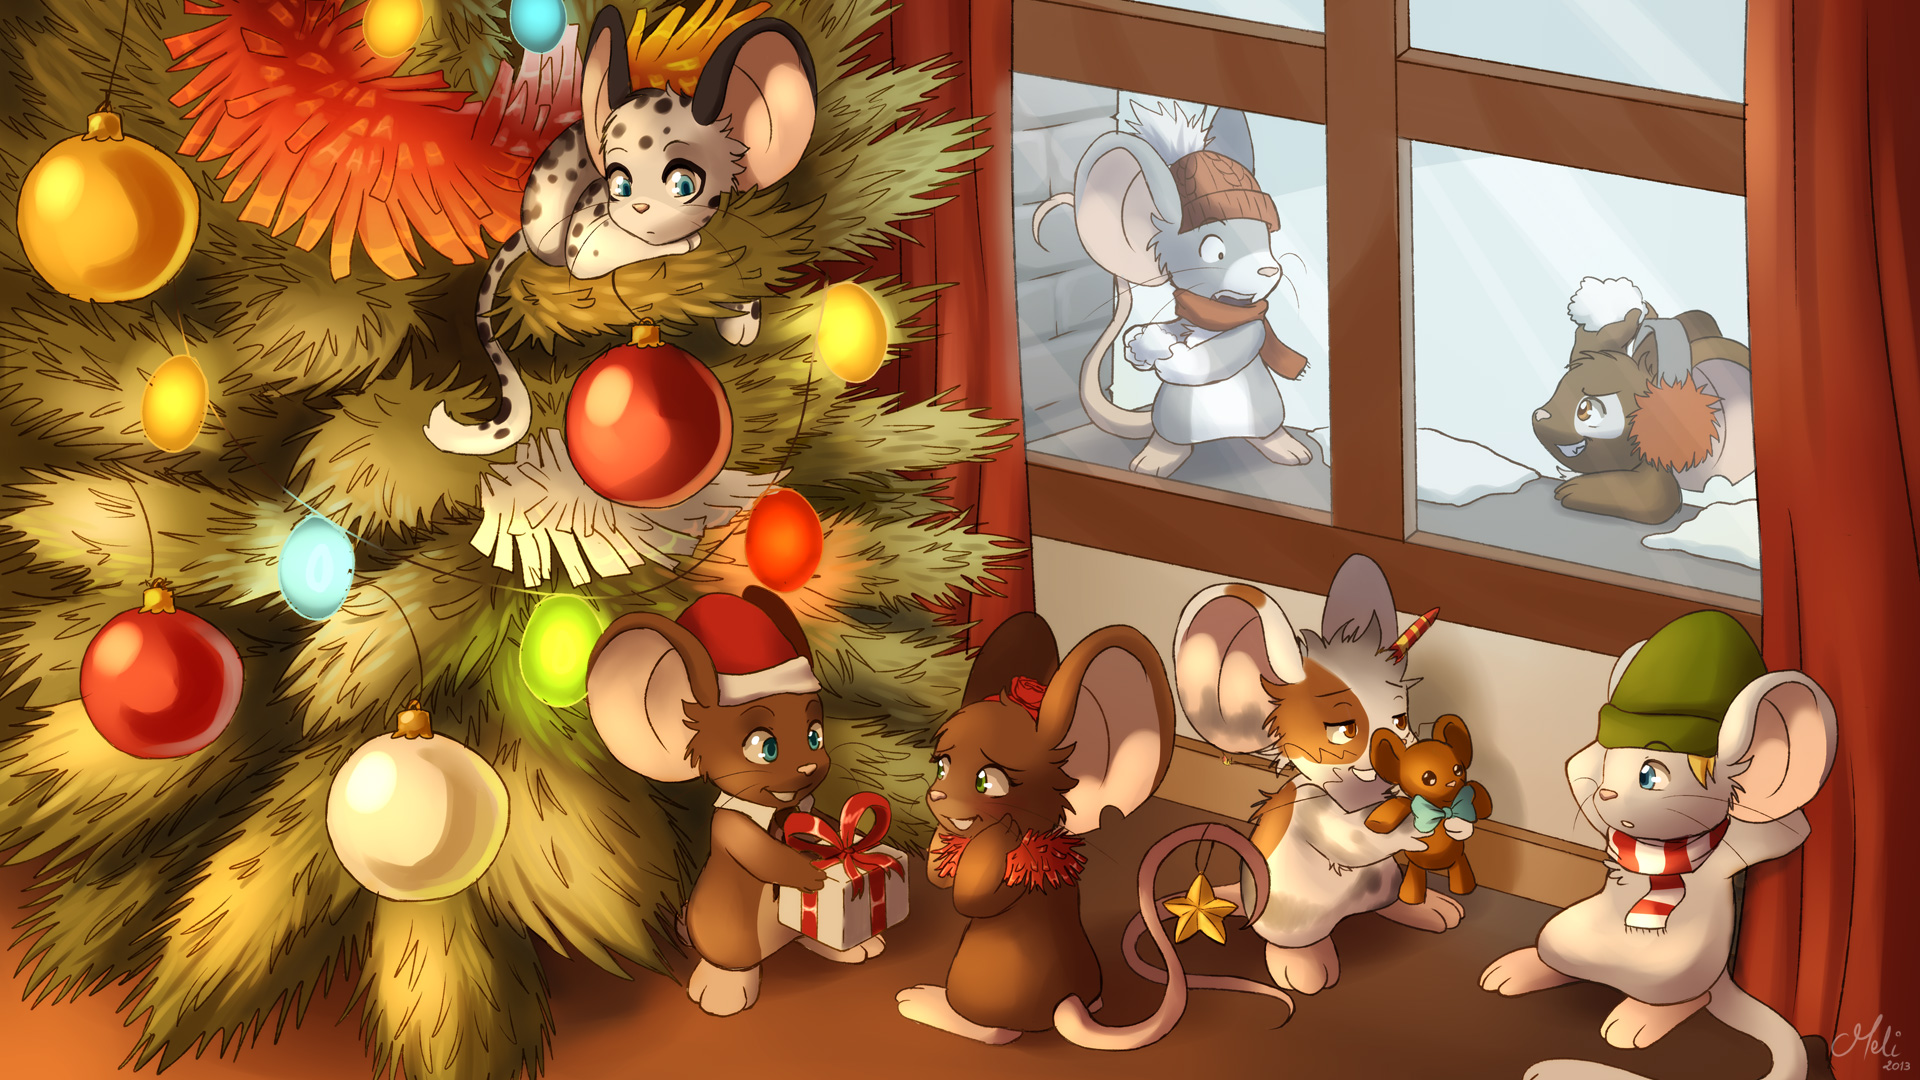 Transformice wallpapers - Creation de noel pour tout petit ...